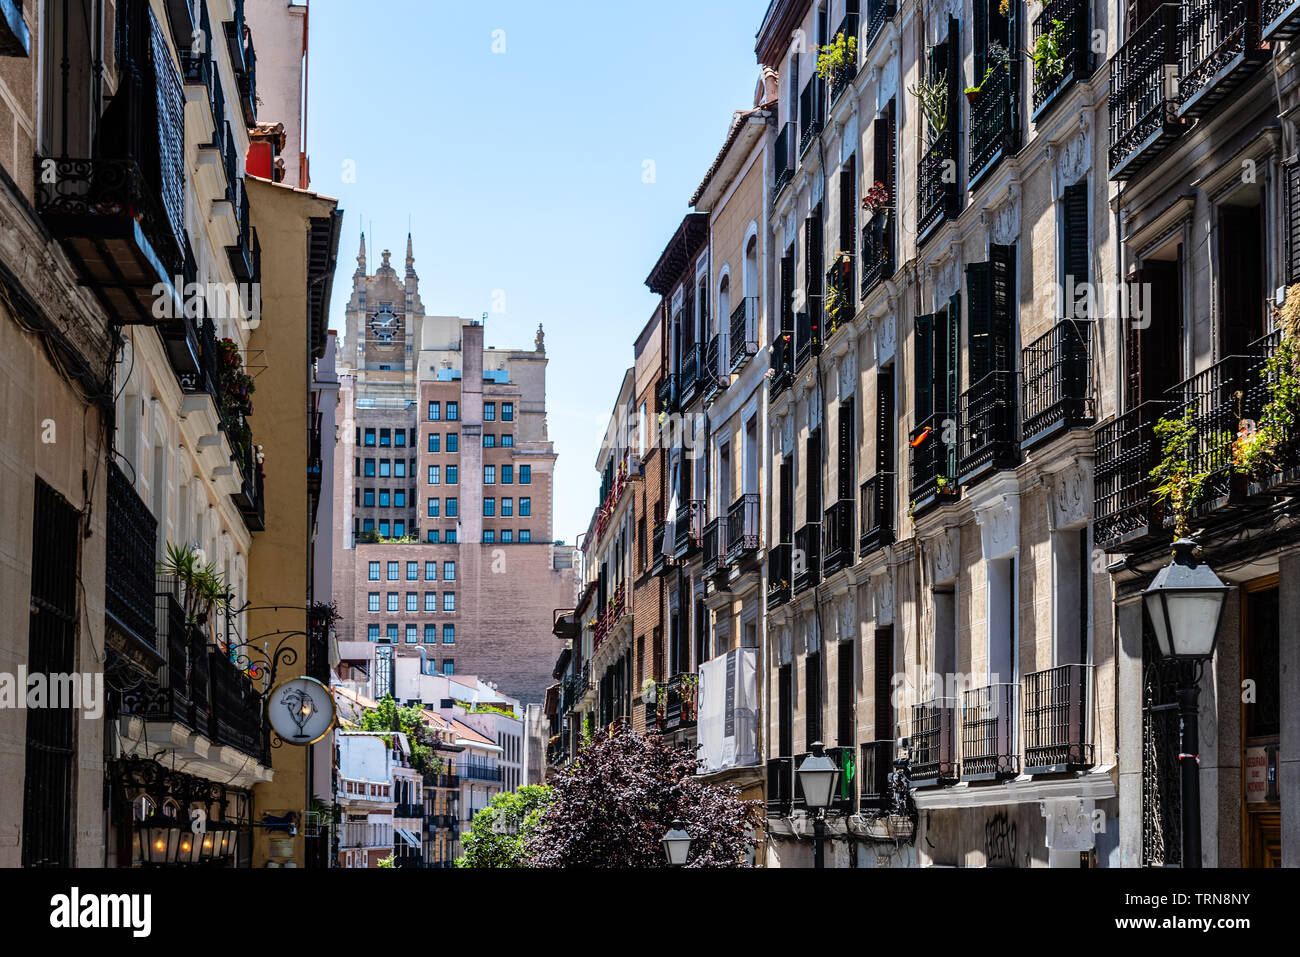 Madrid, Spain - June 9, 2019: Cityscape of Malasana district in Madrid. Malasana is one of the trendiest neighborhoods in the city Stock Photo